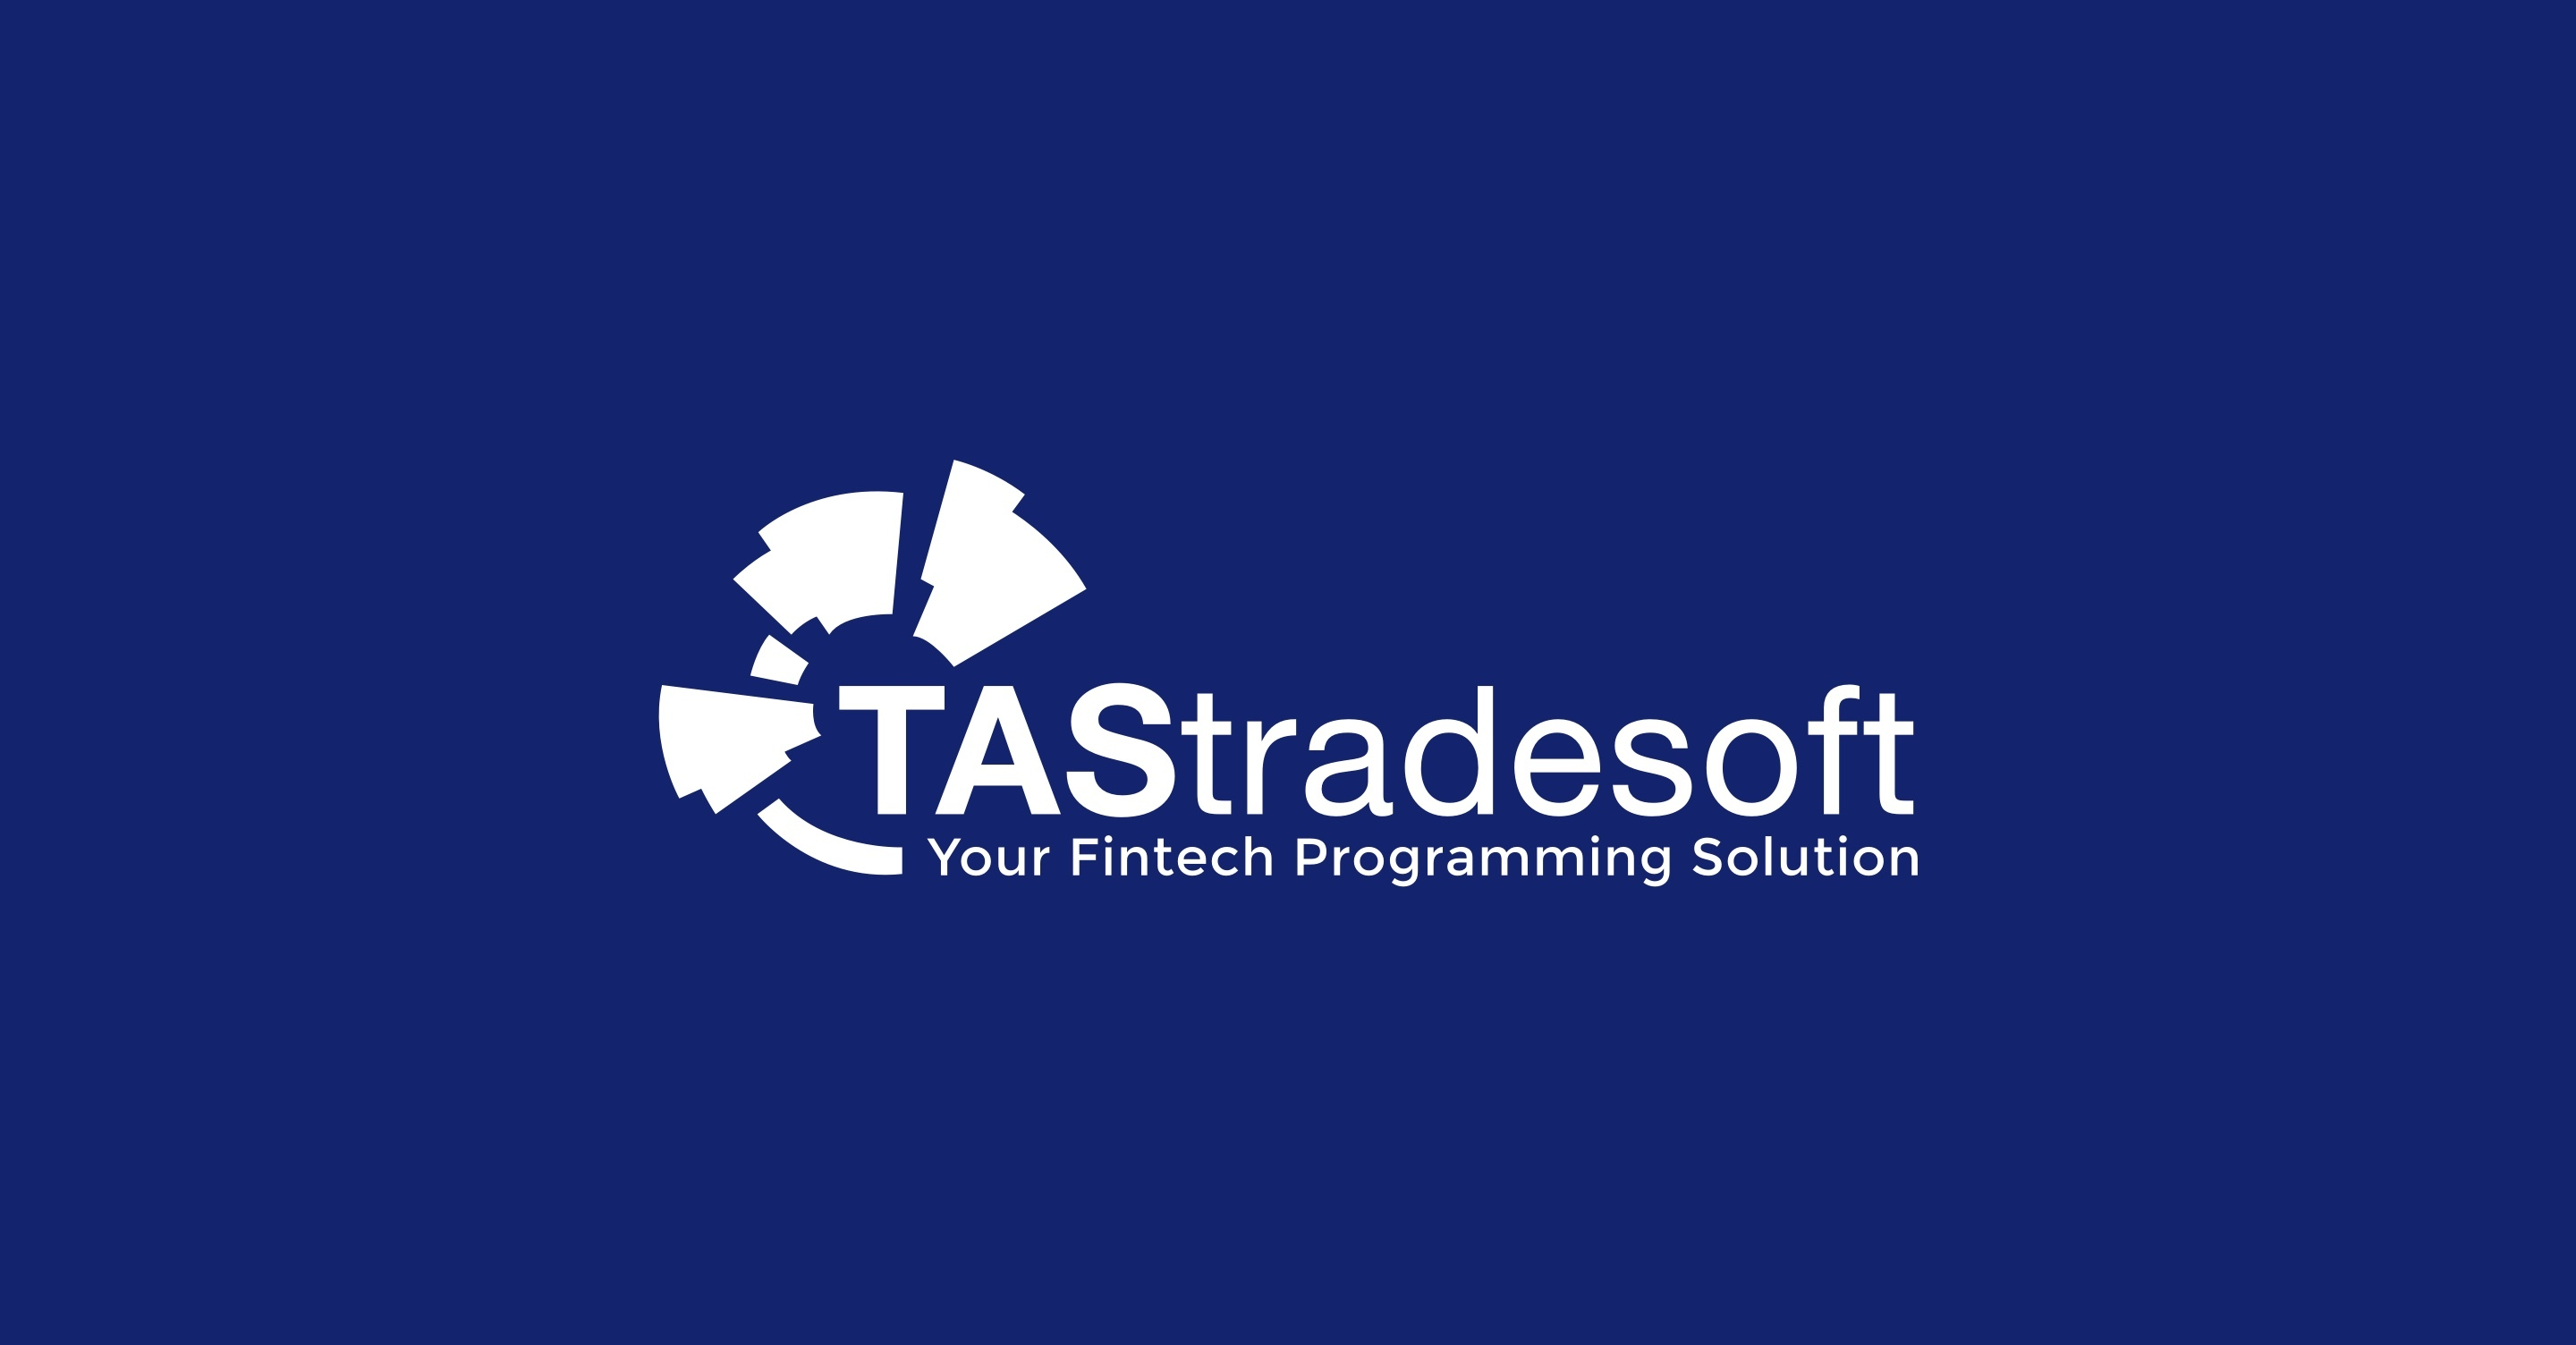 TAS TradeSoft Takes On Financial Projects & More with Copper